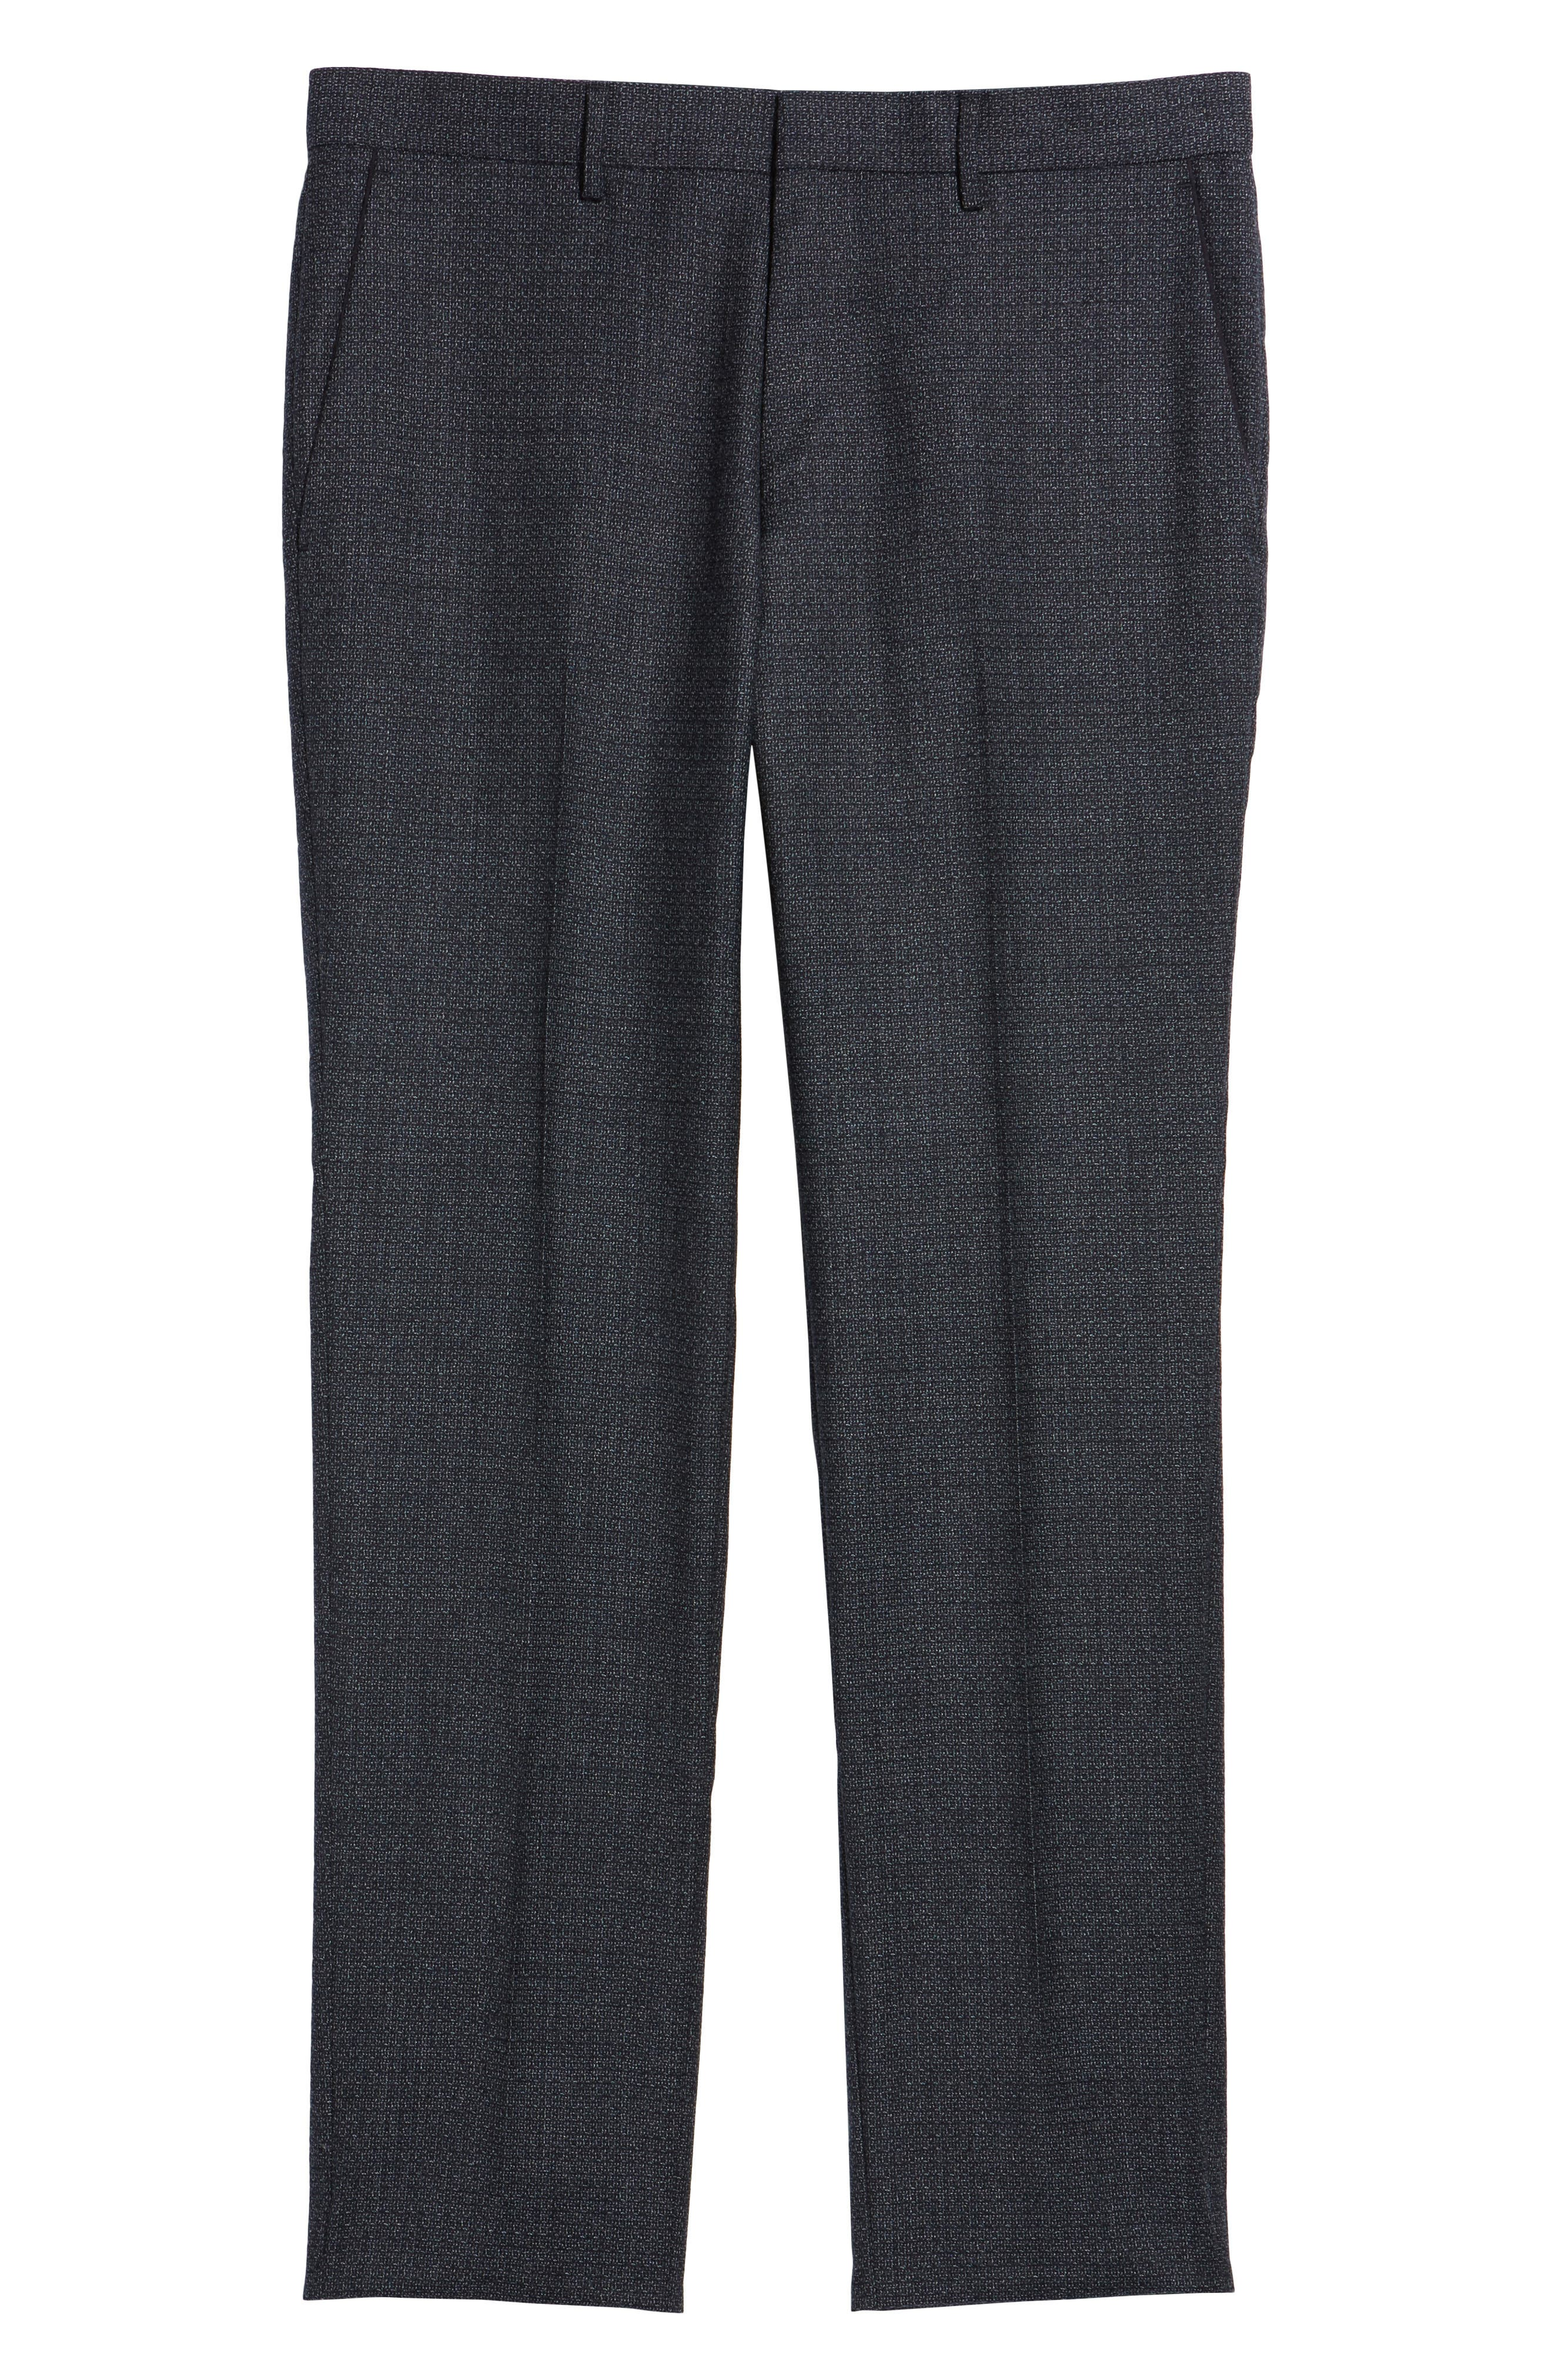 Giro Flat Front Solid Wool Trousers,                             Alternate thumbnail 12, color,